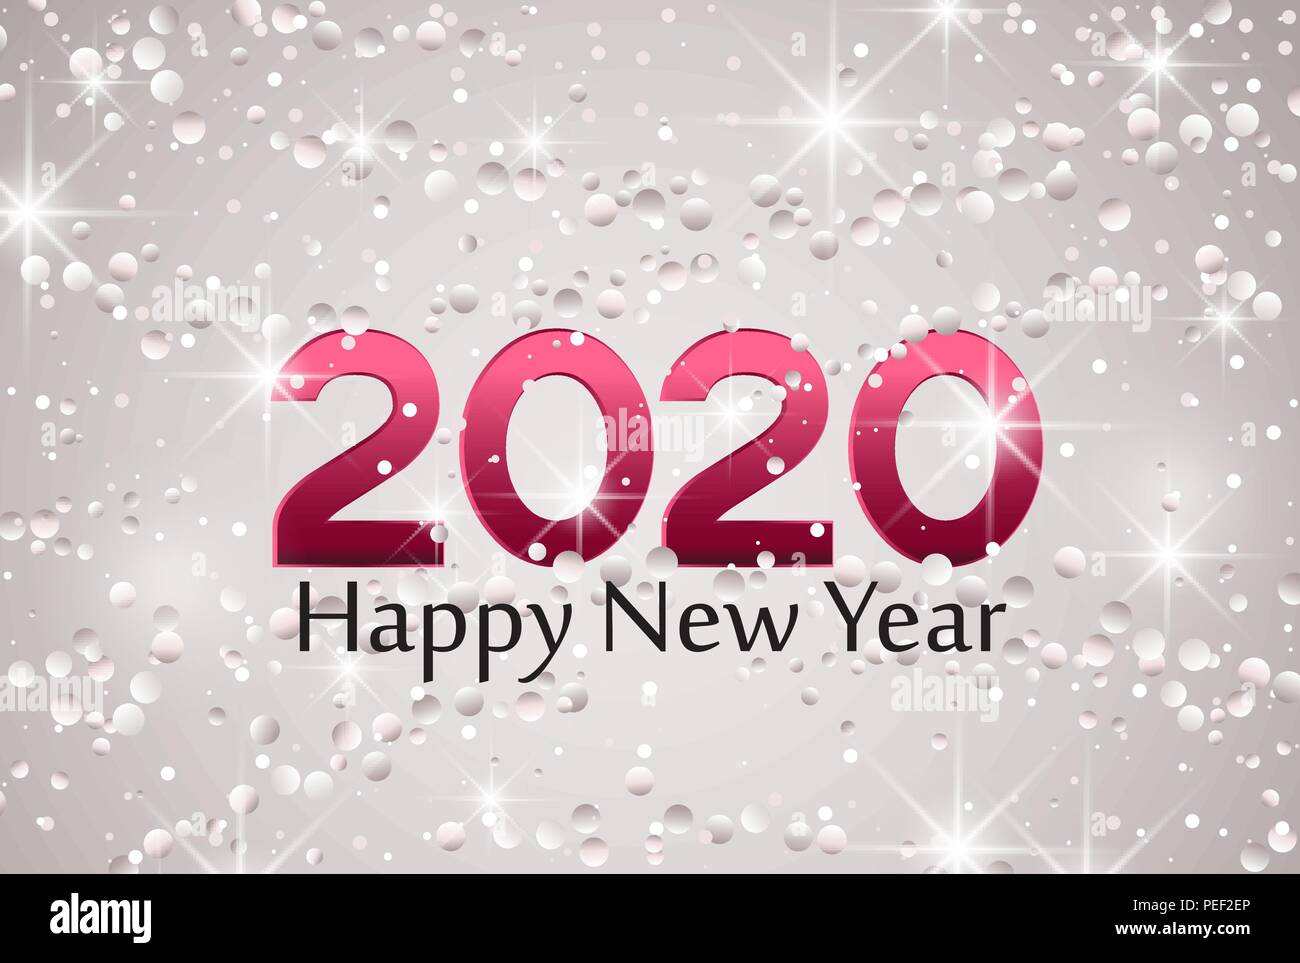 merry christmas card 2020 happy new year background string lights cheerful party and celebration